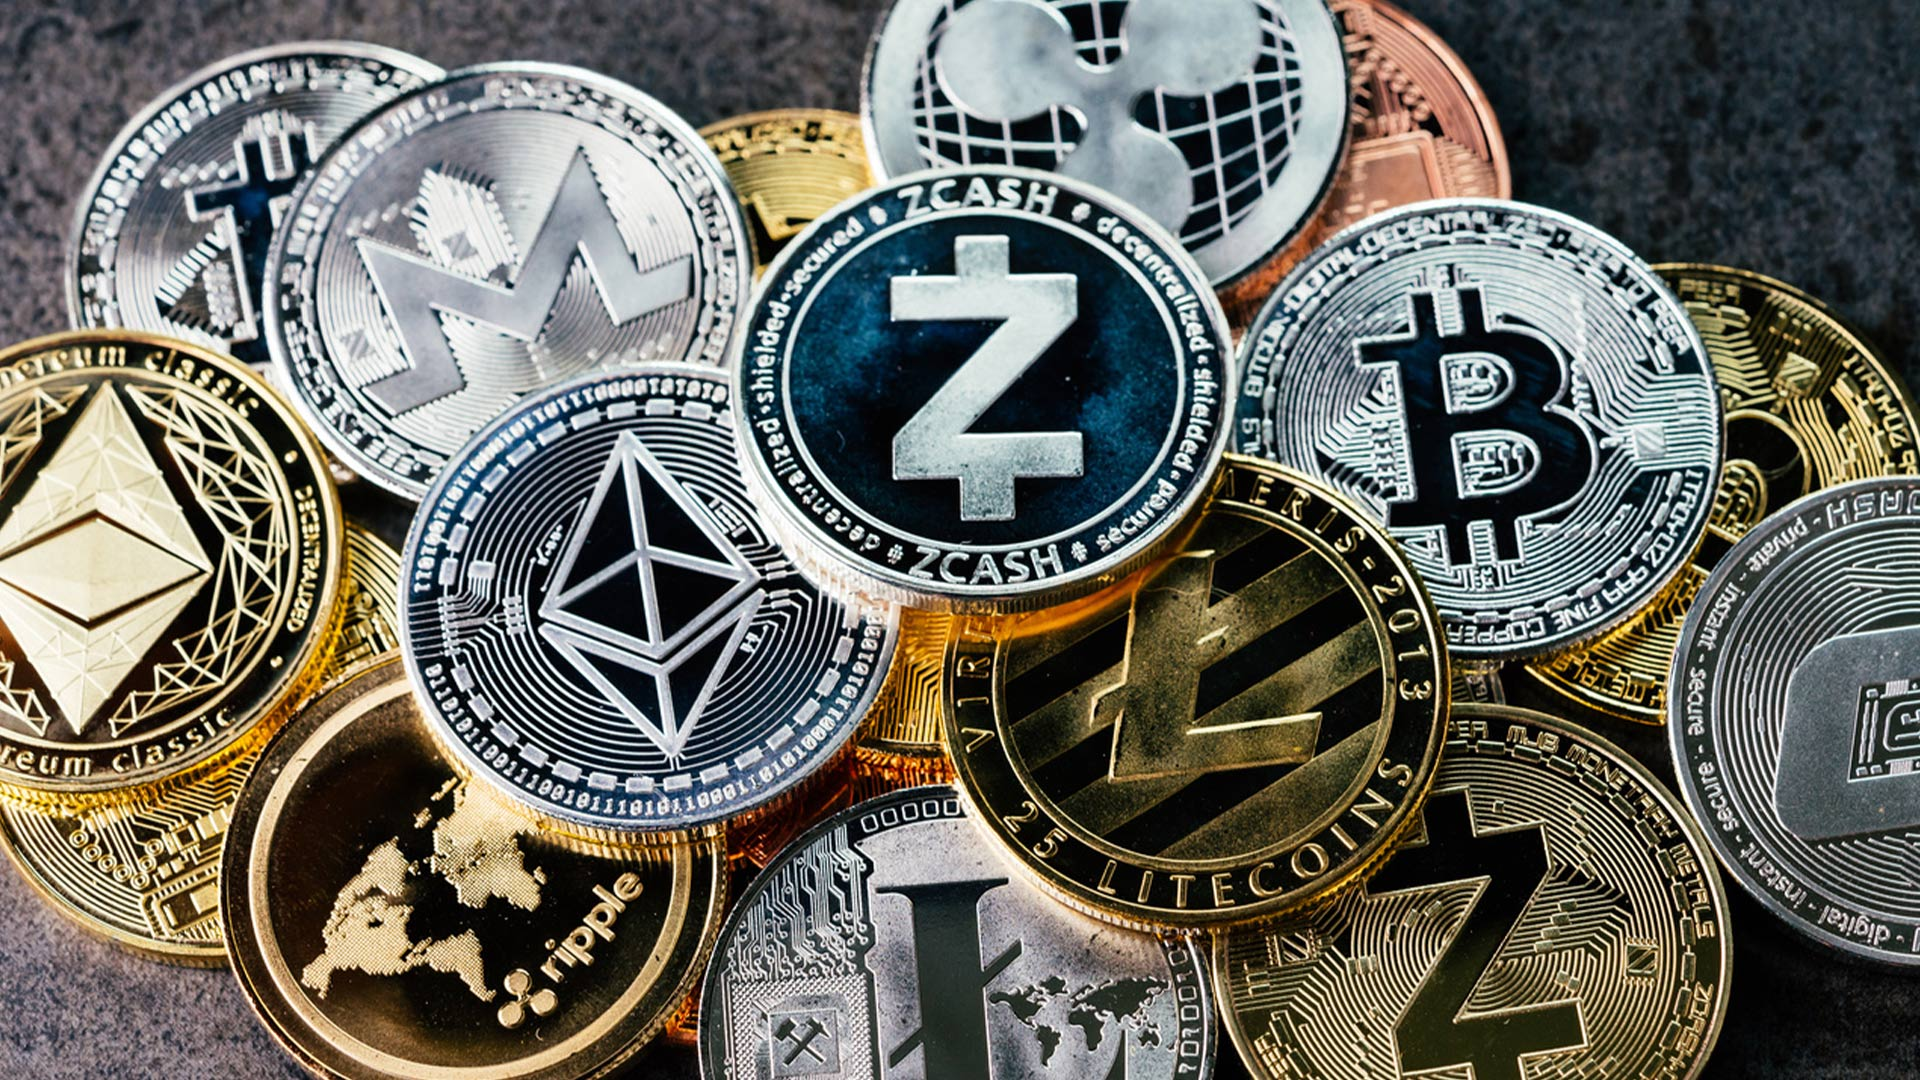 Virtual currency tokens